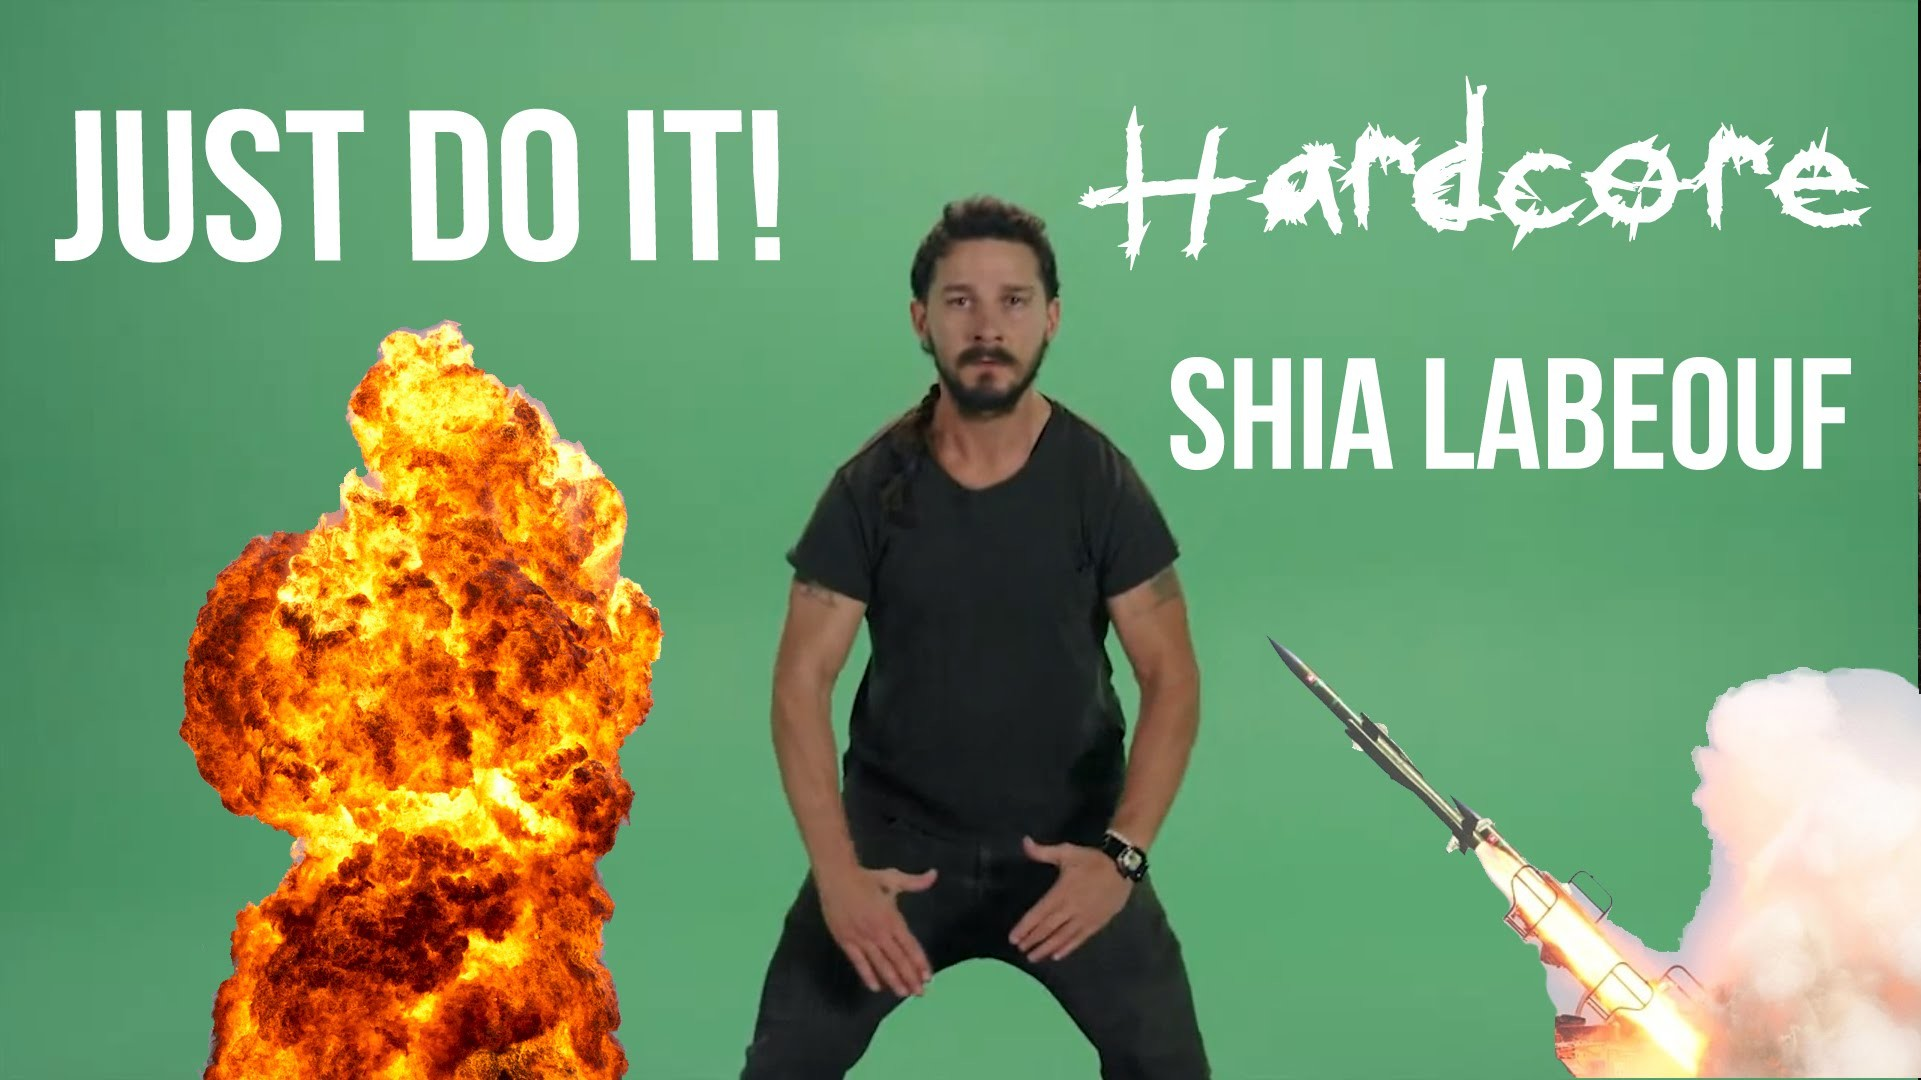 Shia LaBeouf wants you to JUST DO IT!.jpg